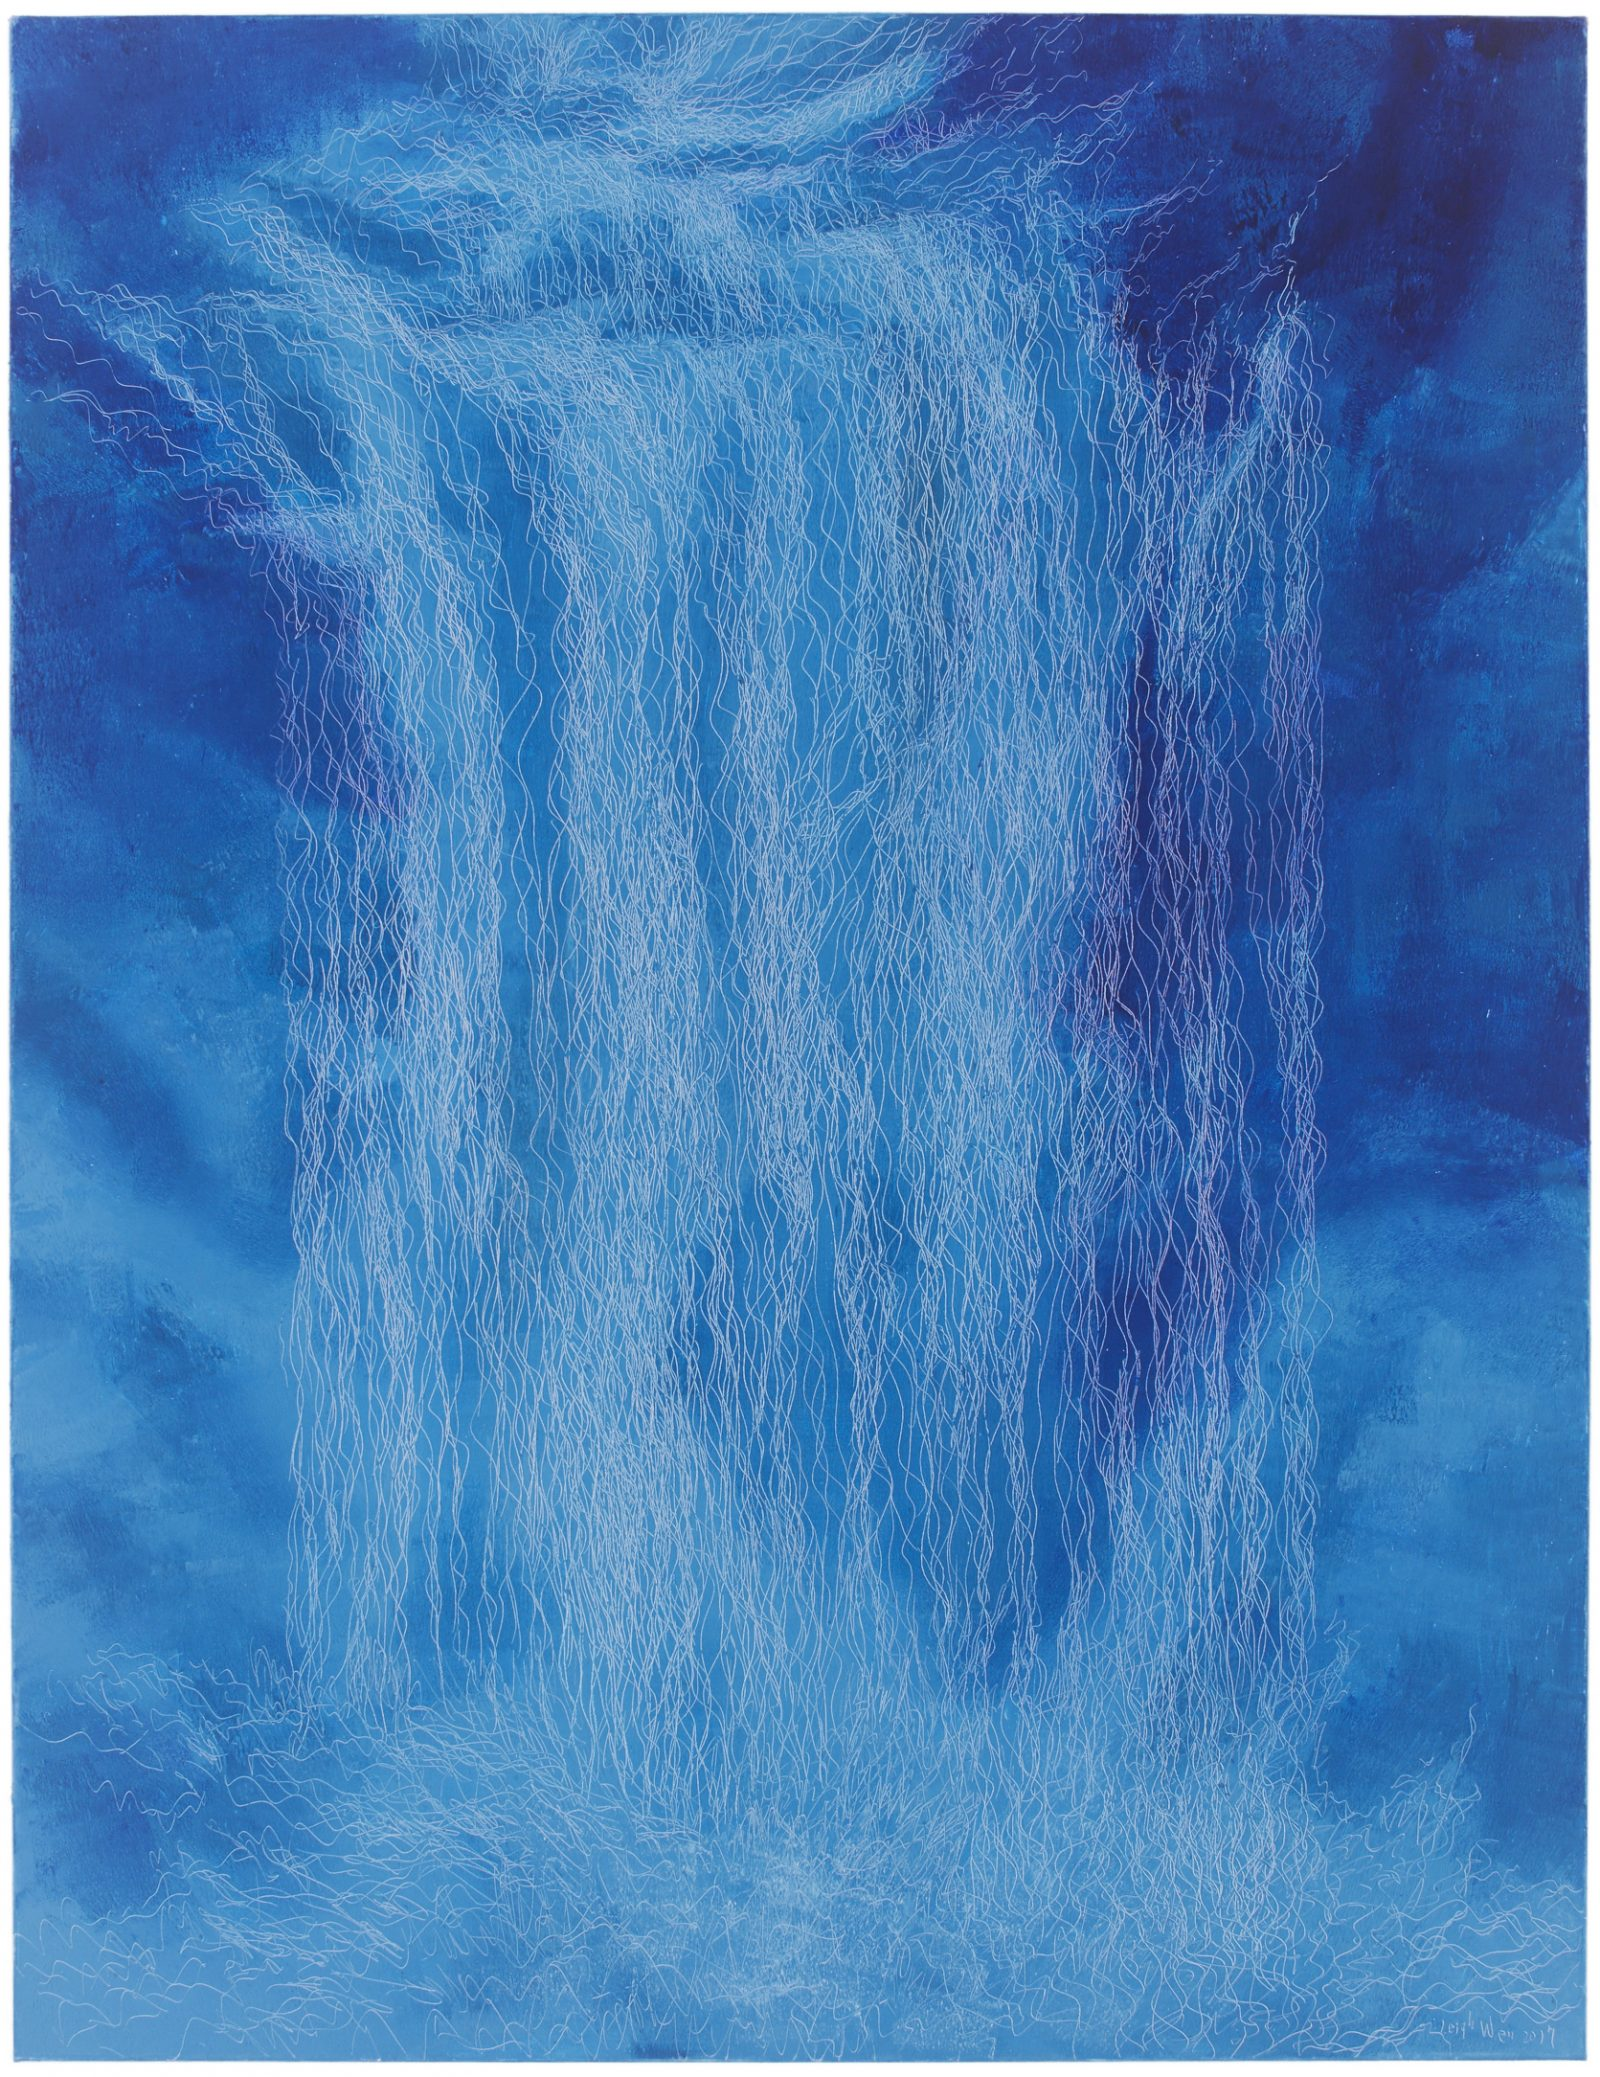 瀑布VI, waterfall VI, 145 x 112 cm, oil on linen, 2017